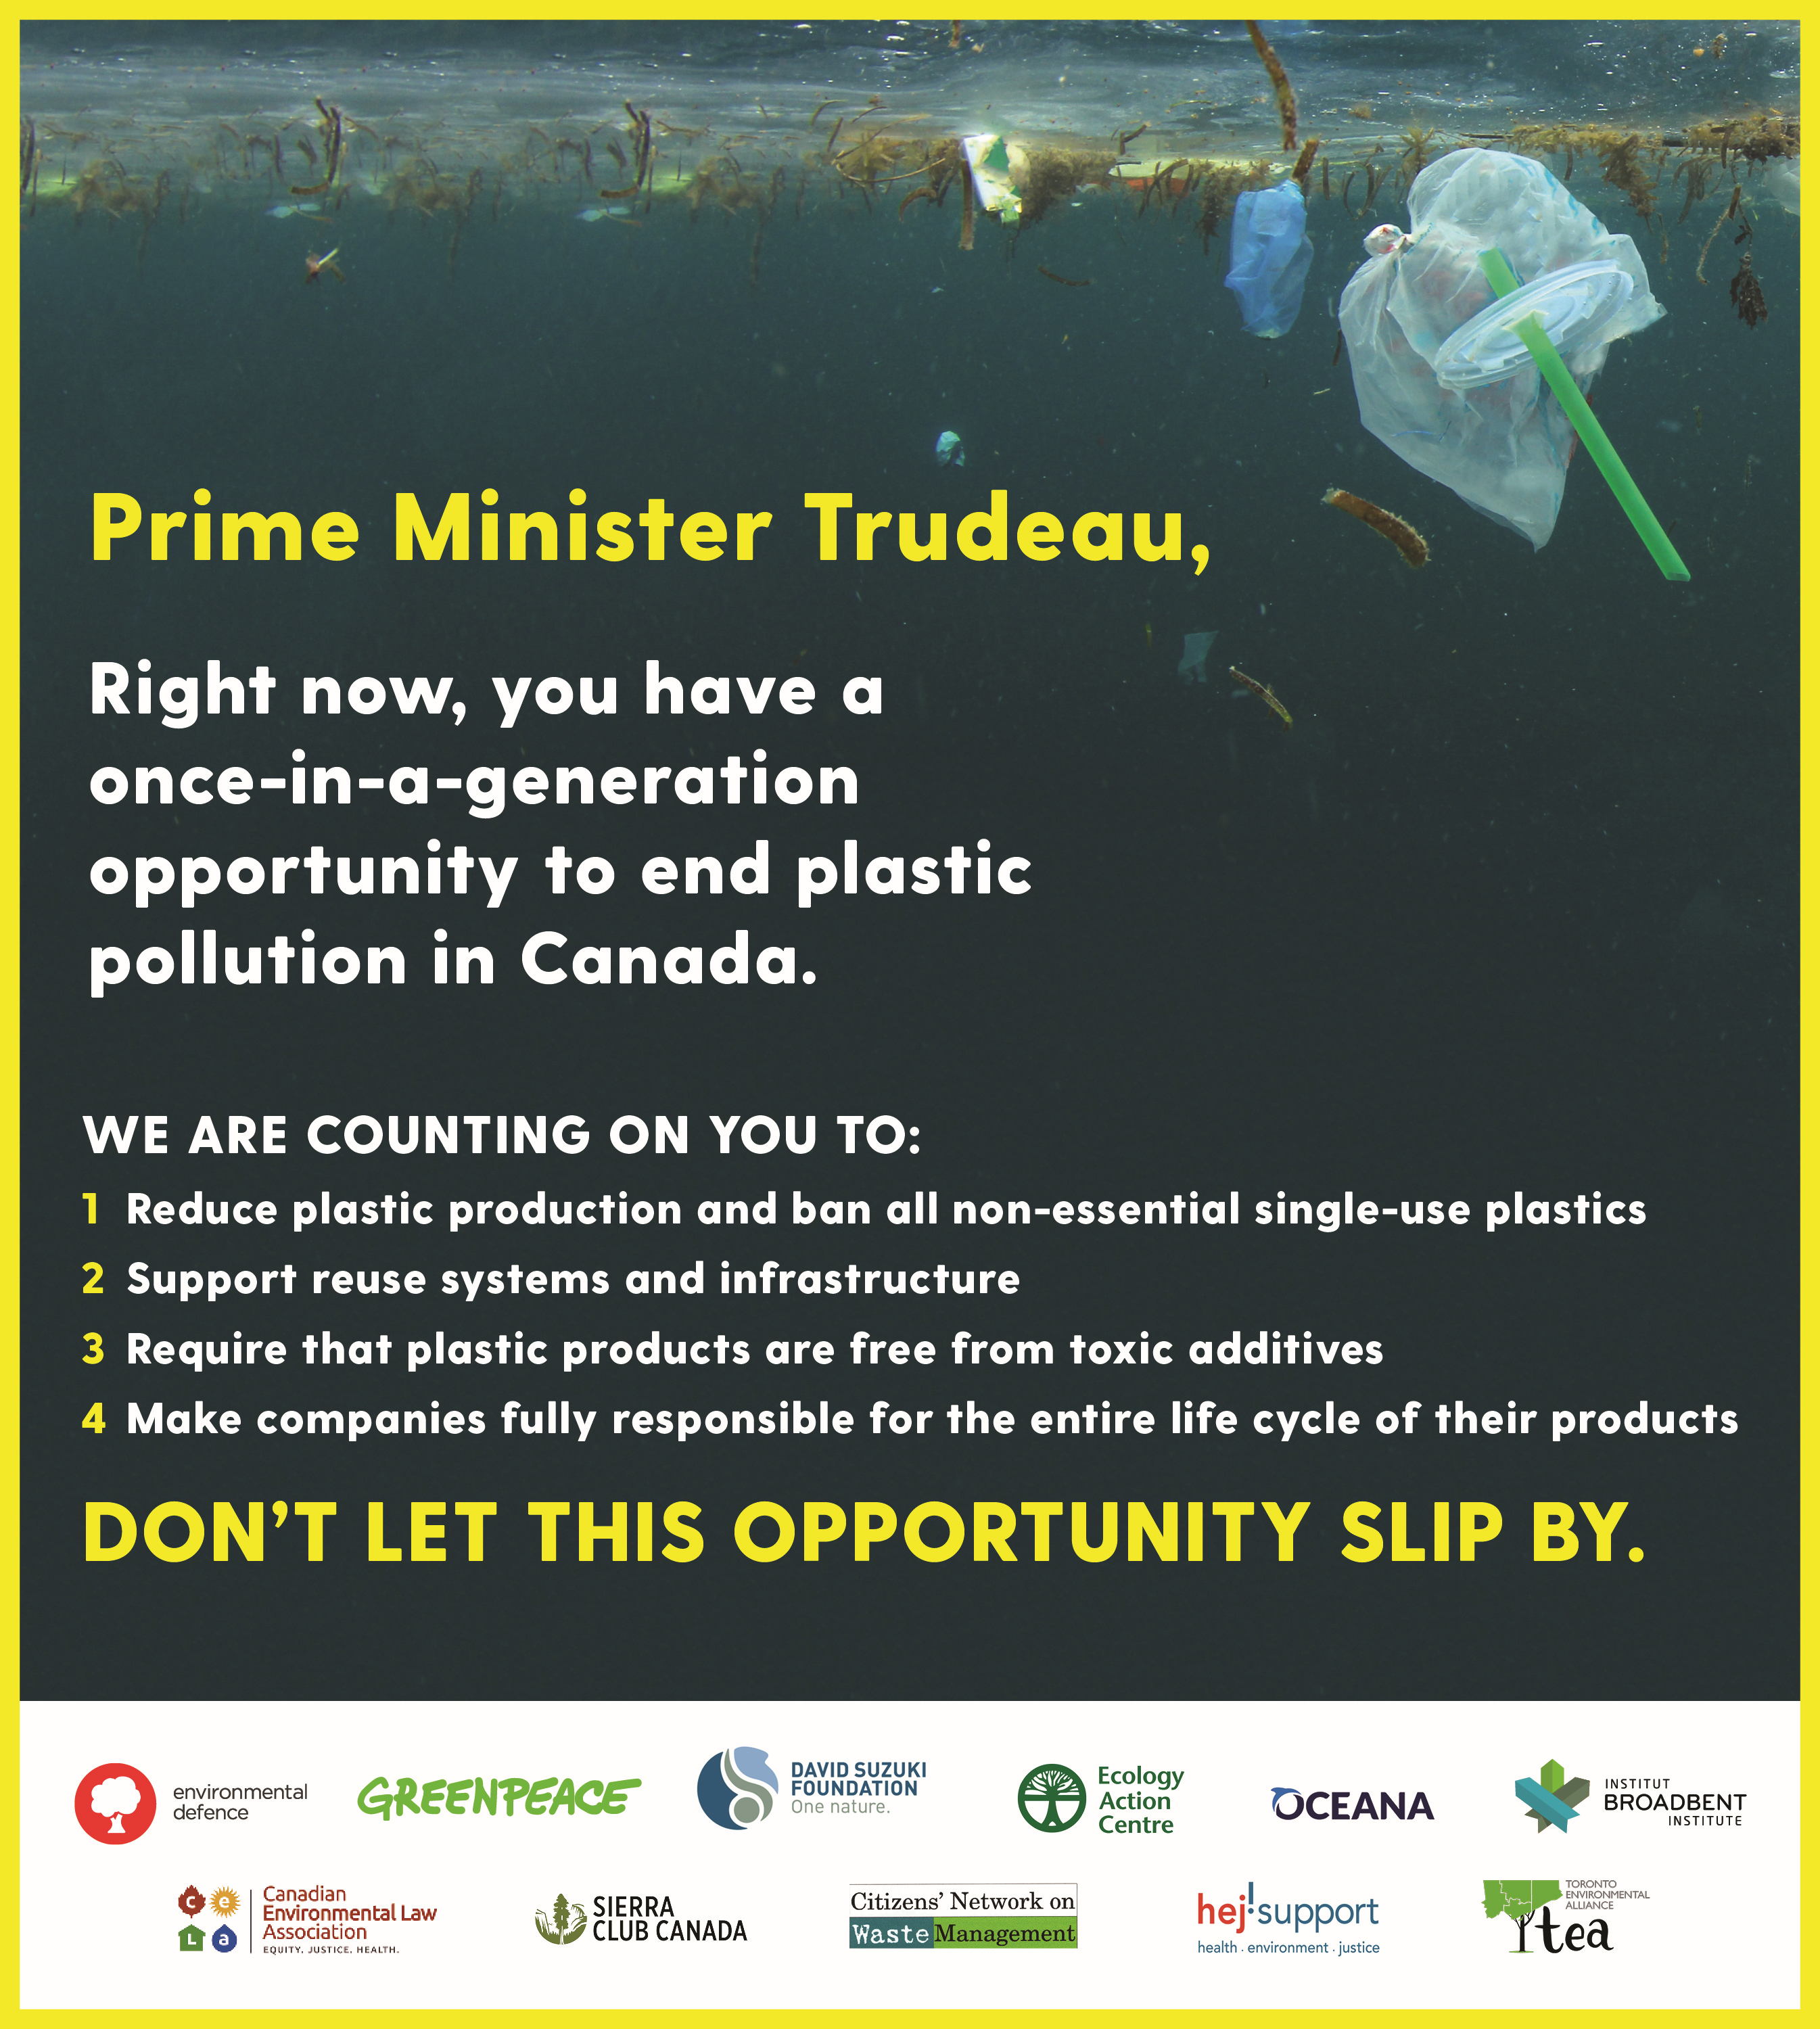 NGOs call on Prime Minister Trudeau to end plastic pollution in Canada